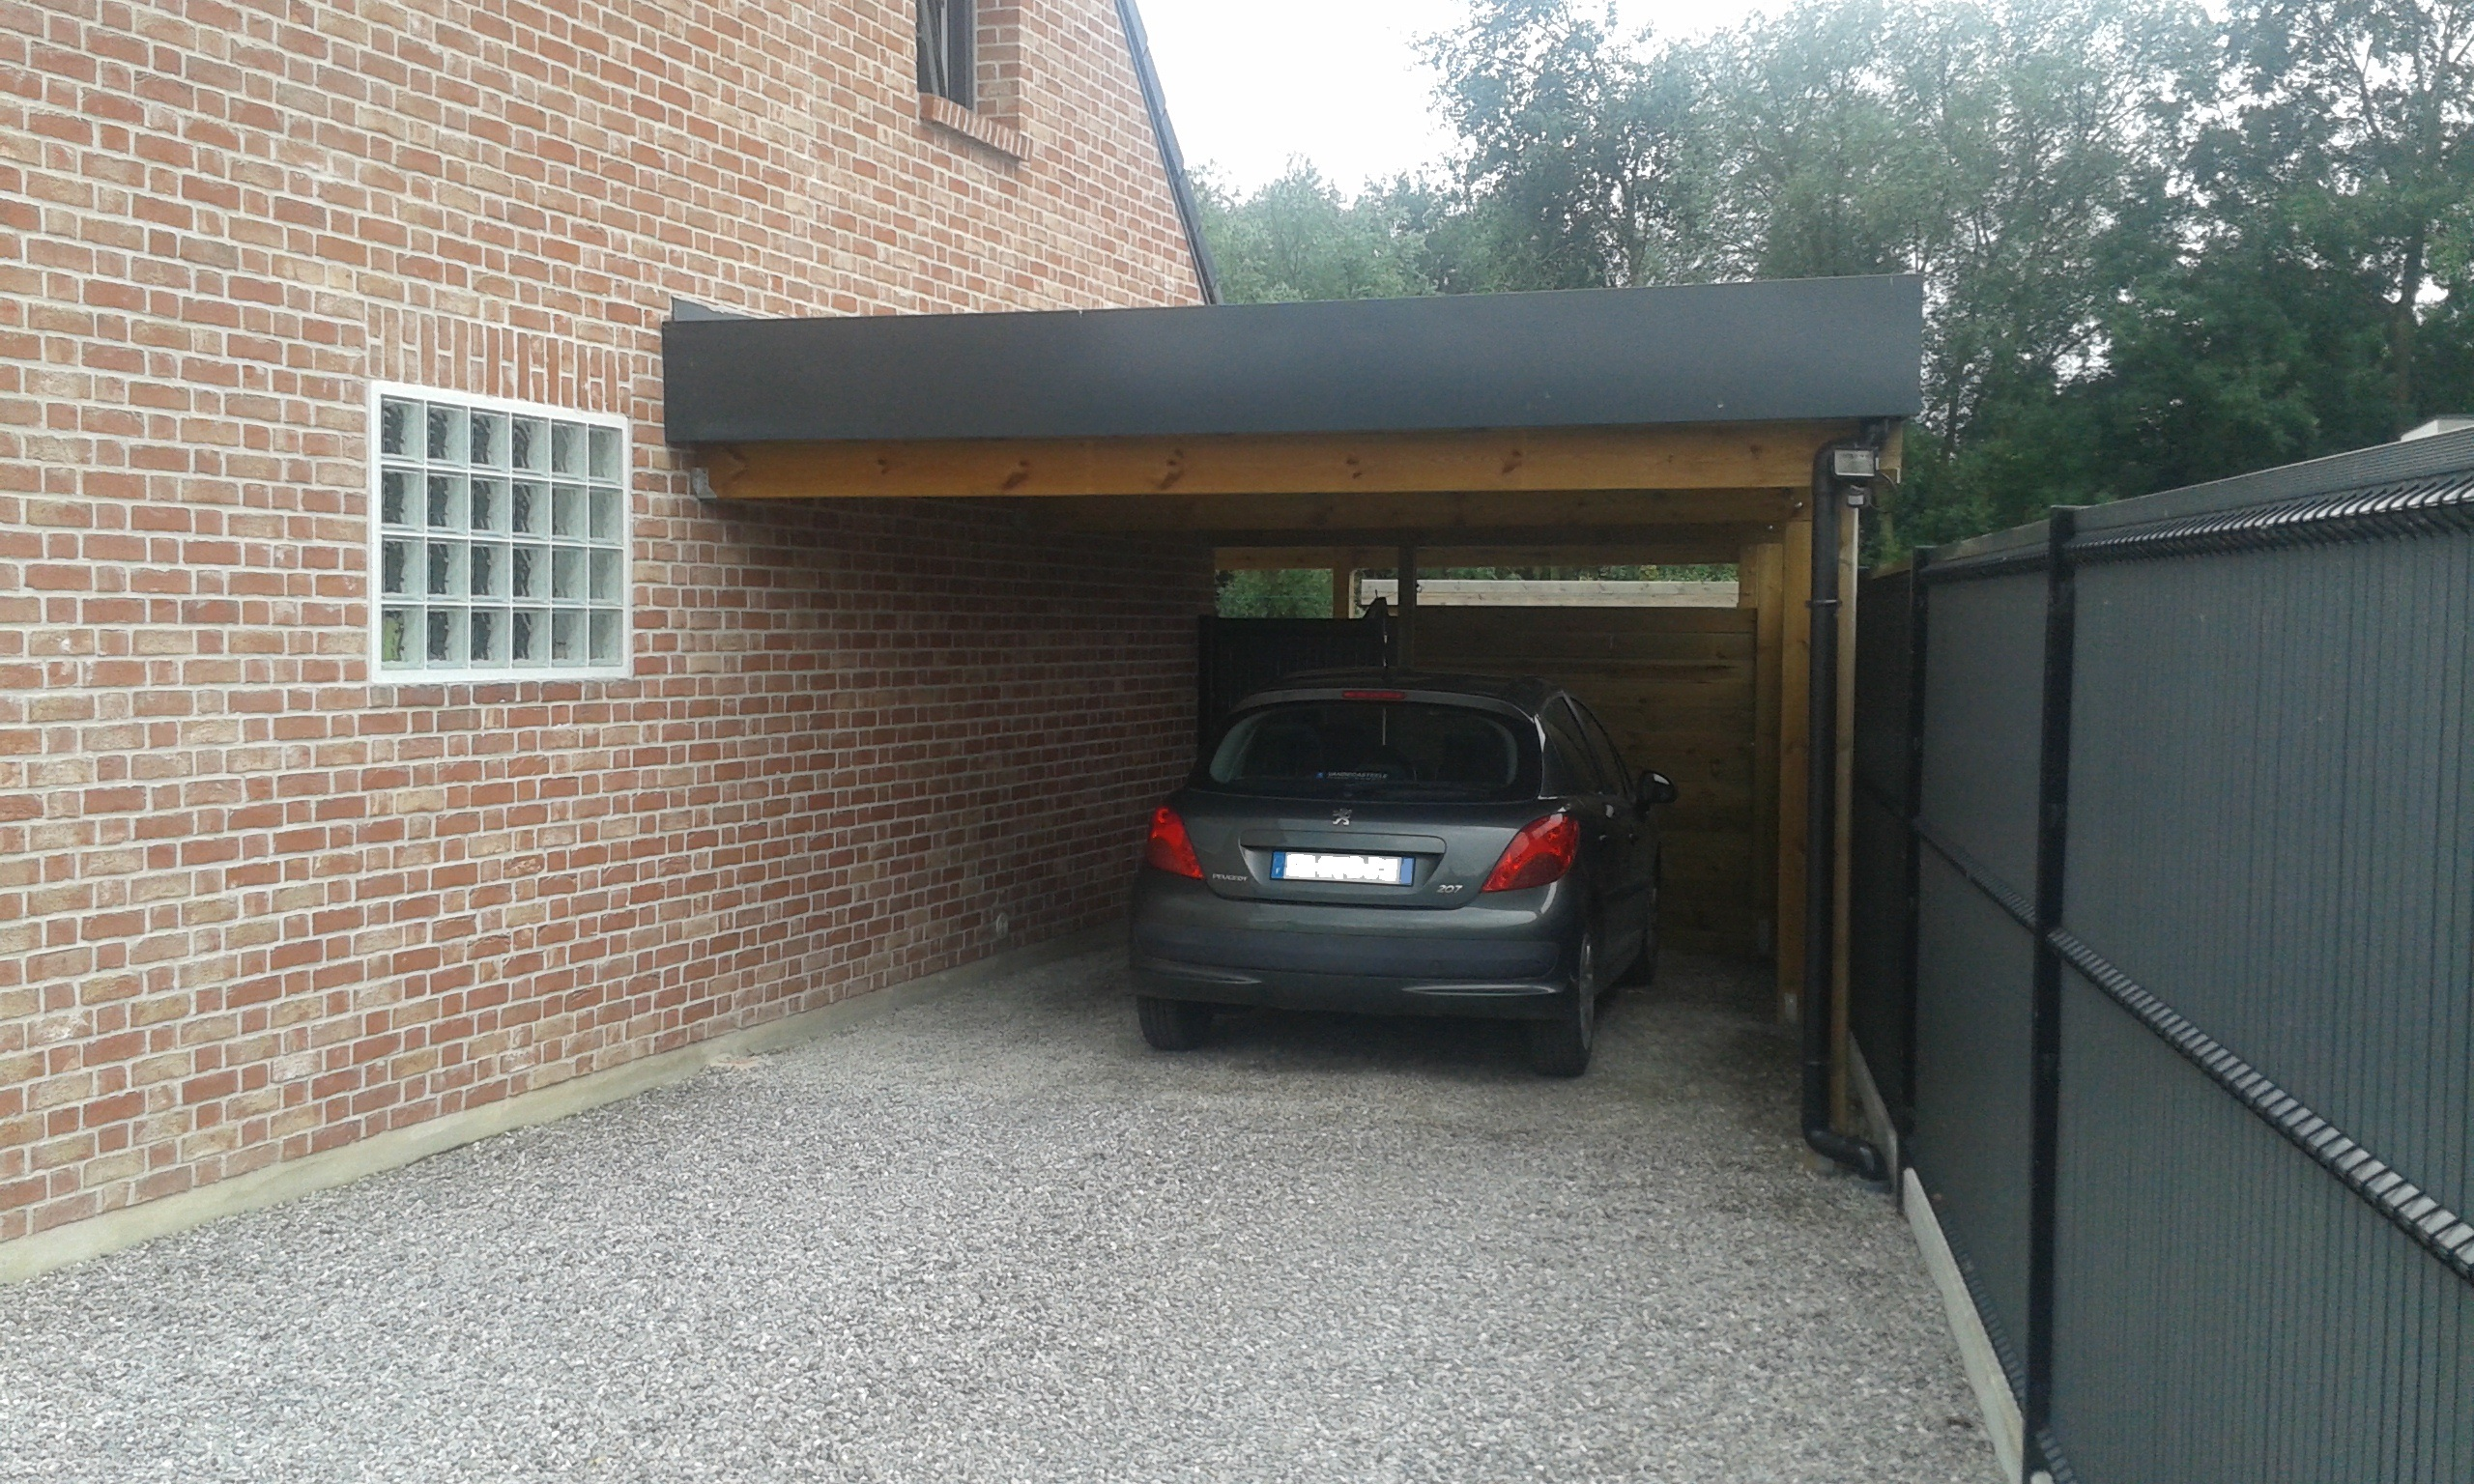 carport adoss en bois pour abriter votre voiture. Black Bedroom Furniture Sets. Home Design Ideas